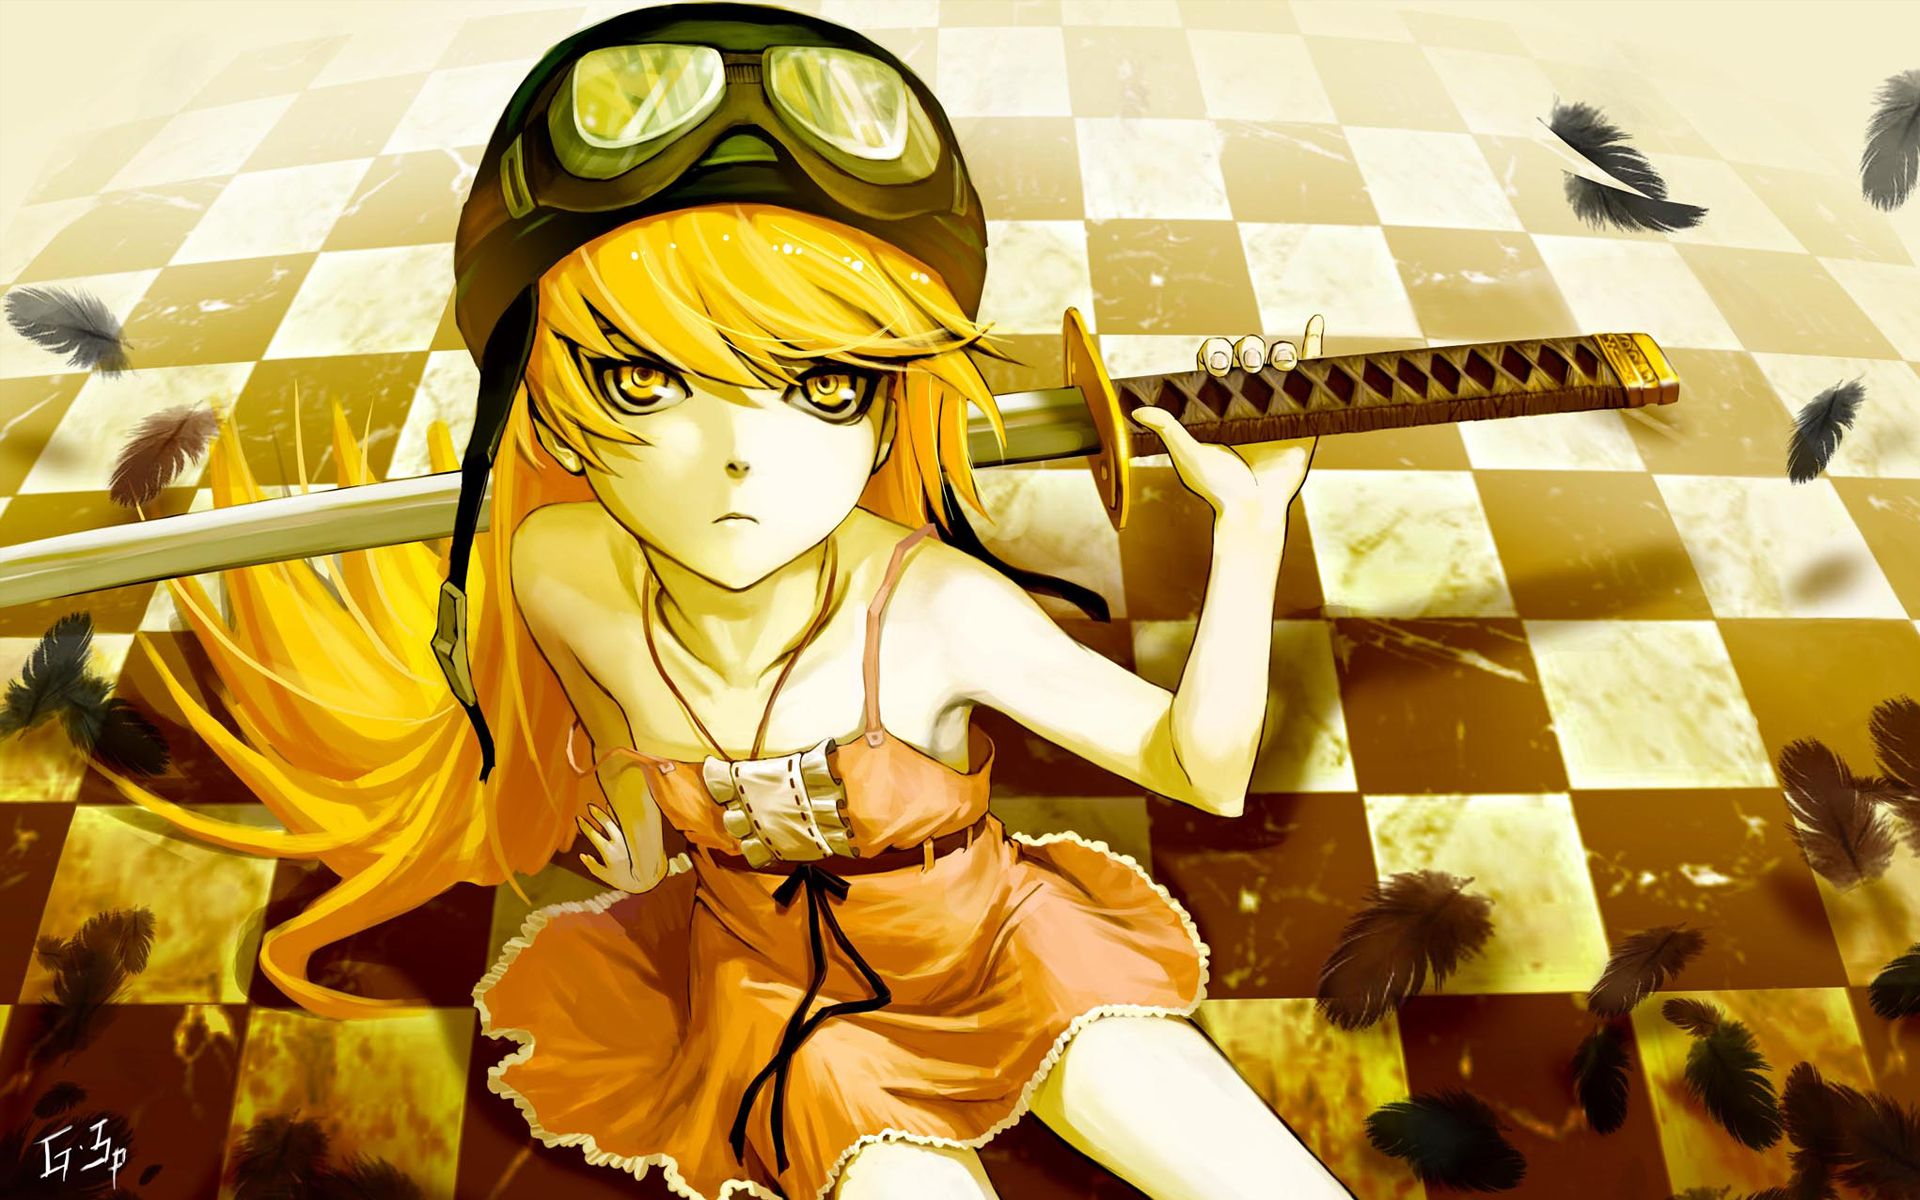 Yellow Anime Wallpapers - Top Free Yellow Anime Backgrounds